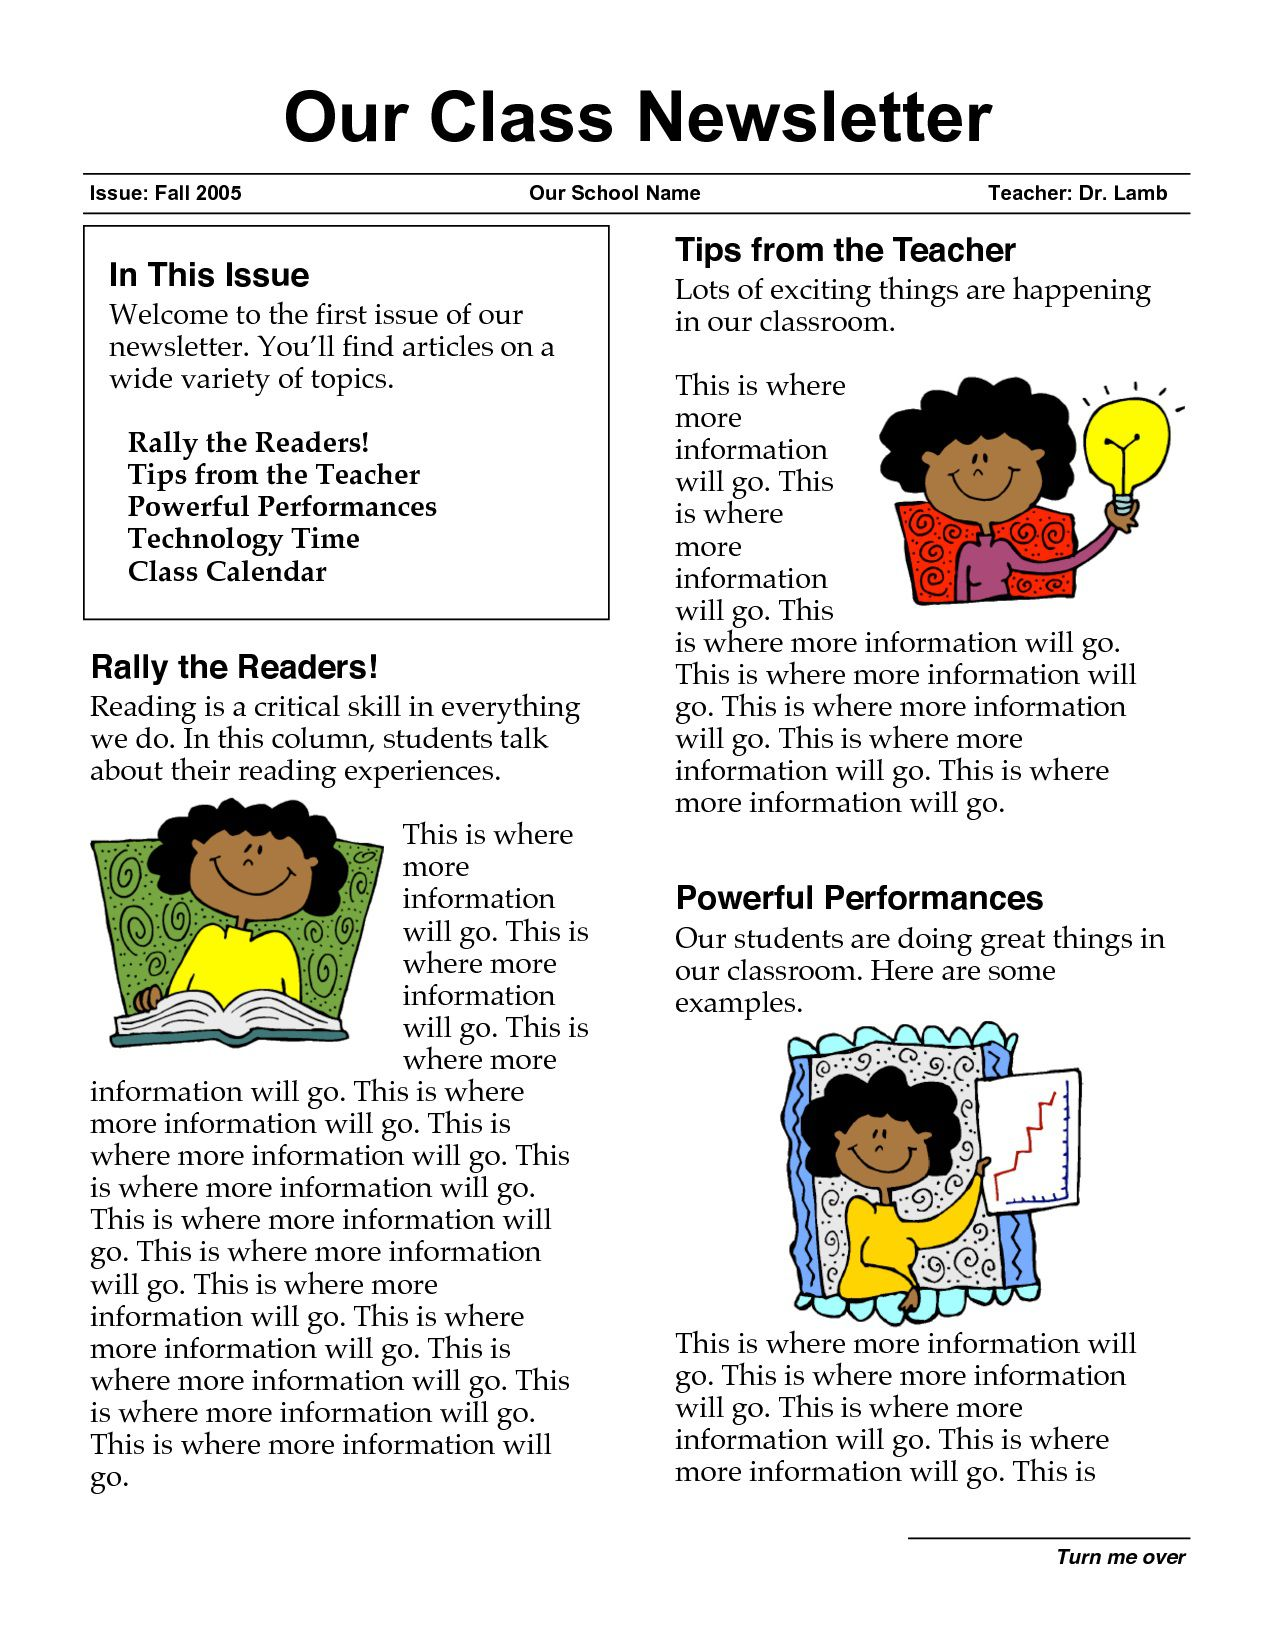 003 Fascinating Free Newsletter Template For Teacher Image  Downloadable Editable PreschoolFull